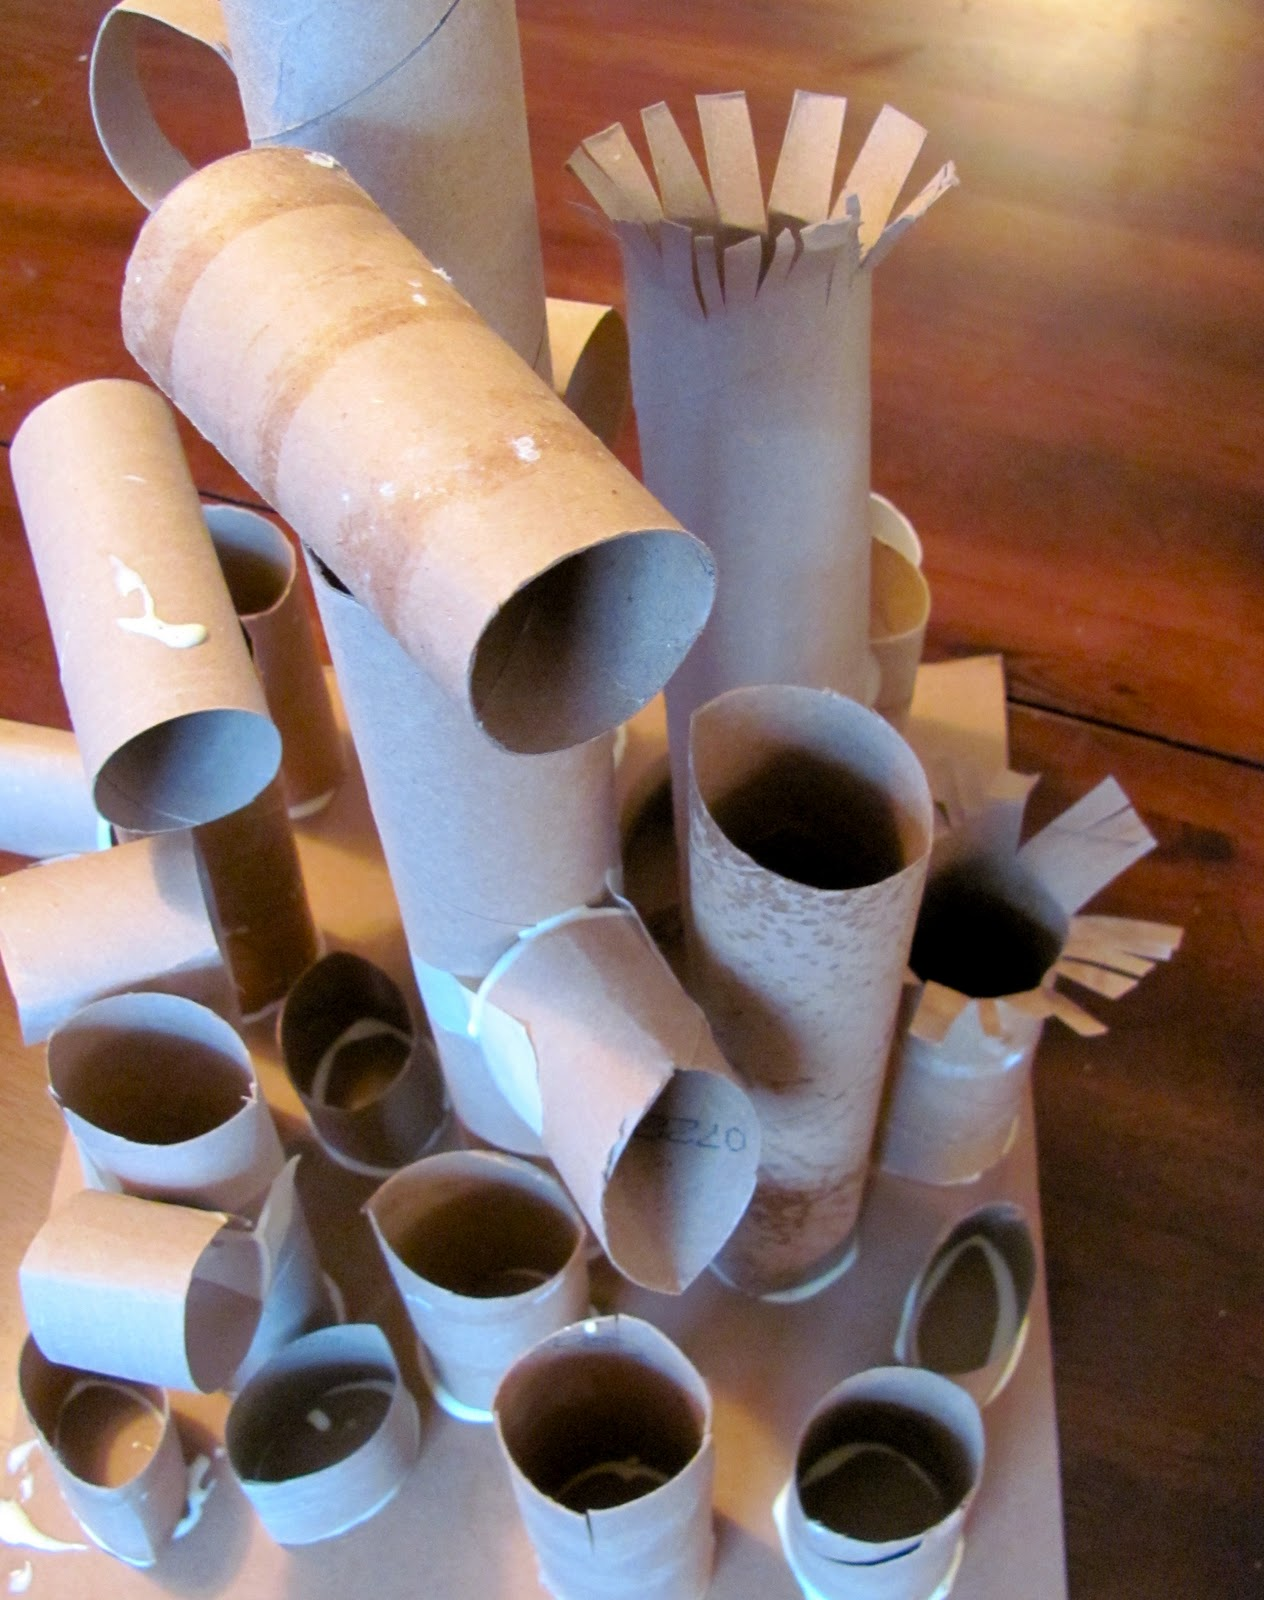 The chocolate muffin tree recycled paper tube sculpture